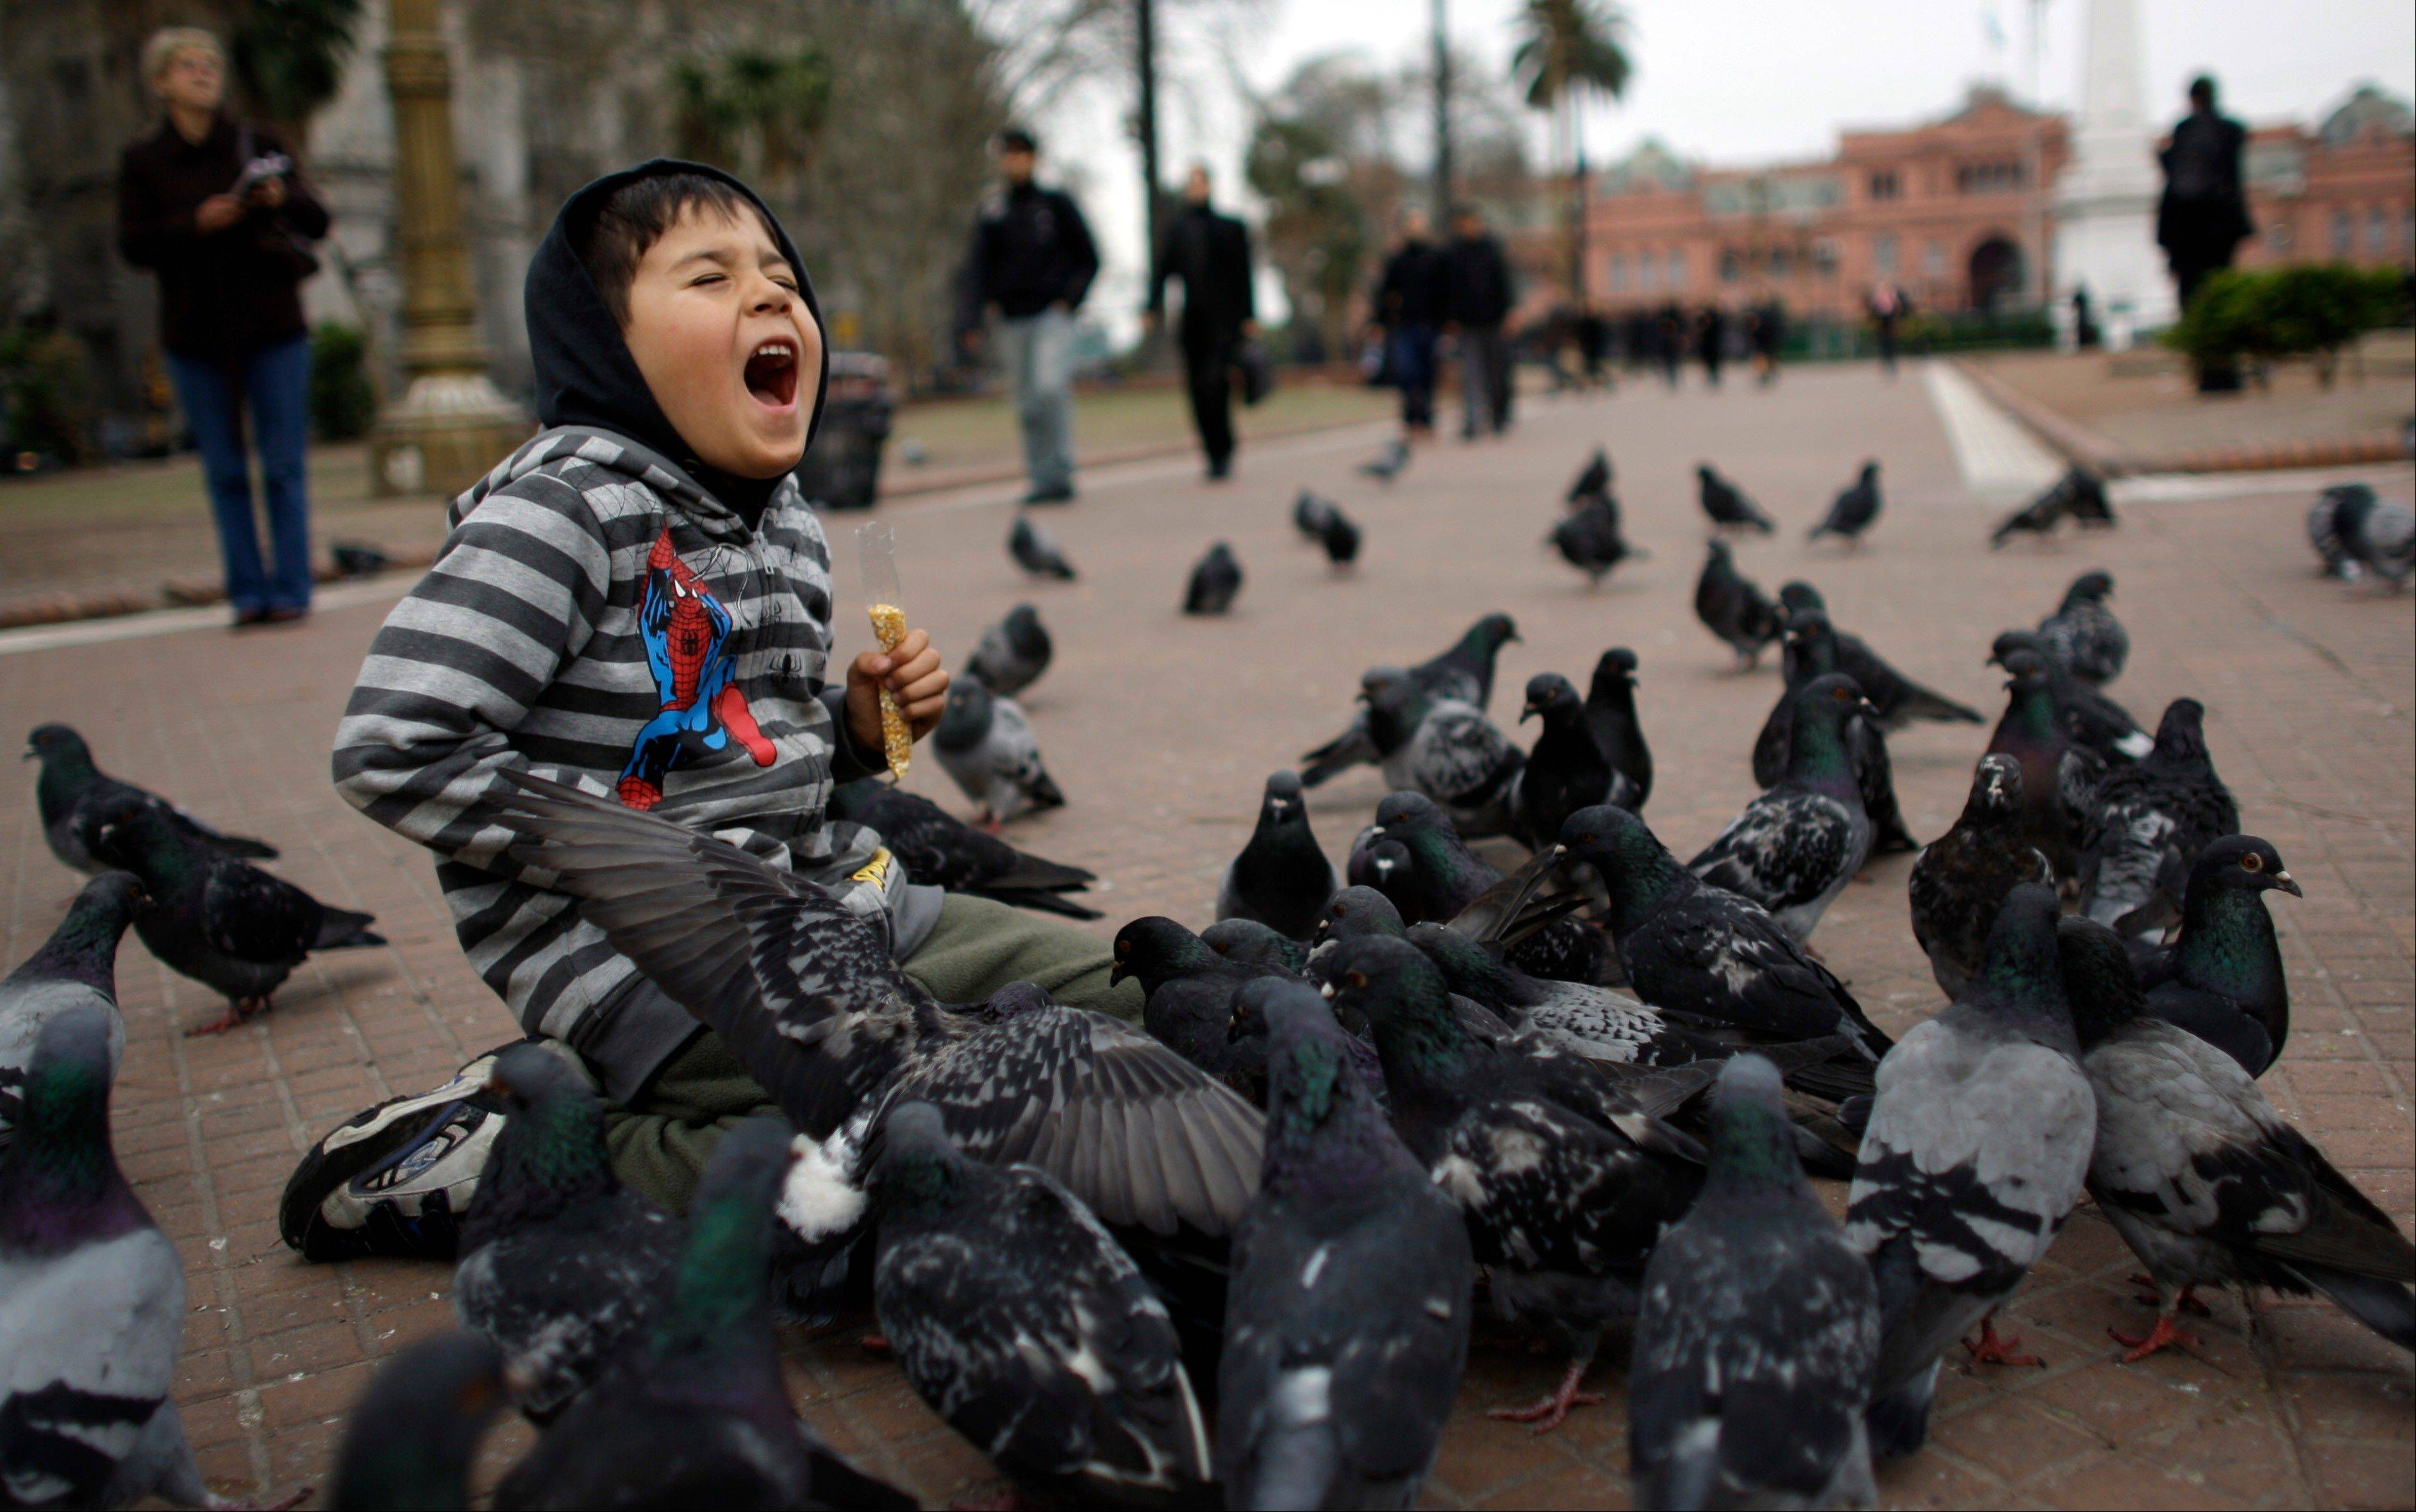 A boy plays with pigeons in the Plaza de Mayo in Buenos Aires.